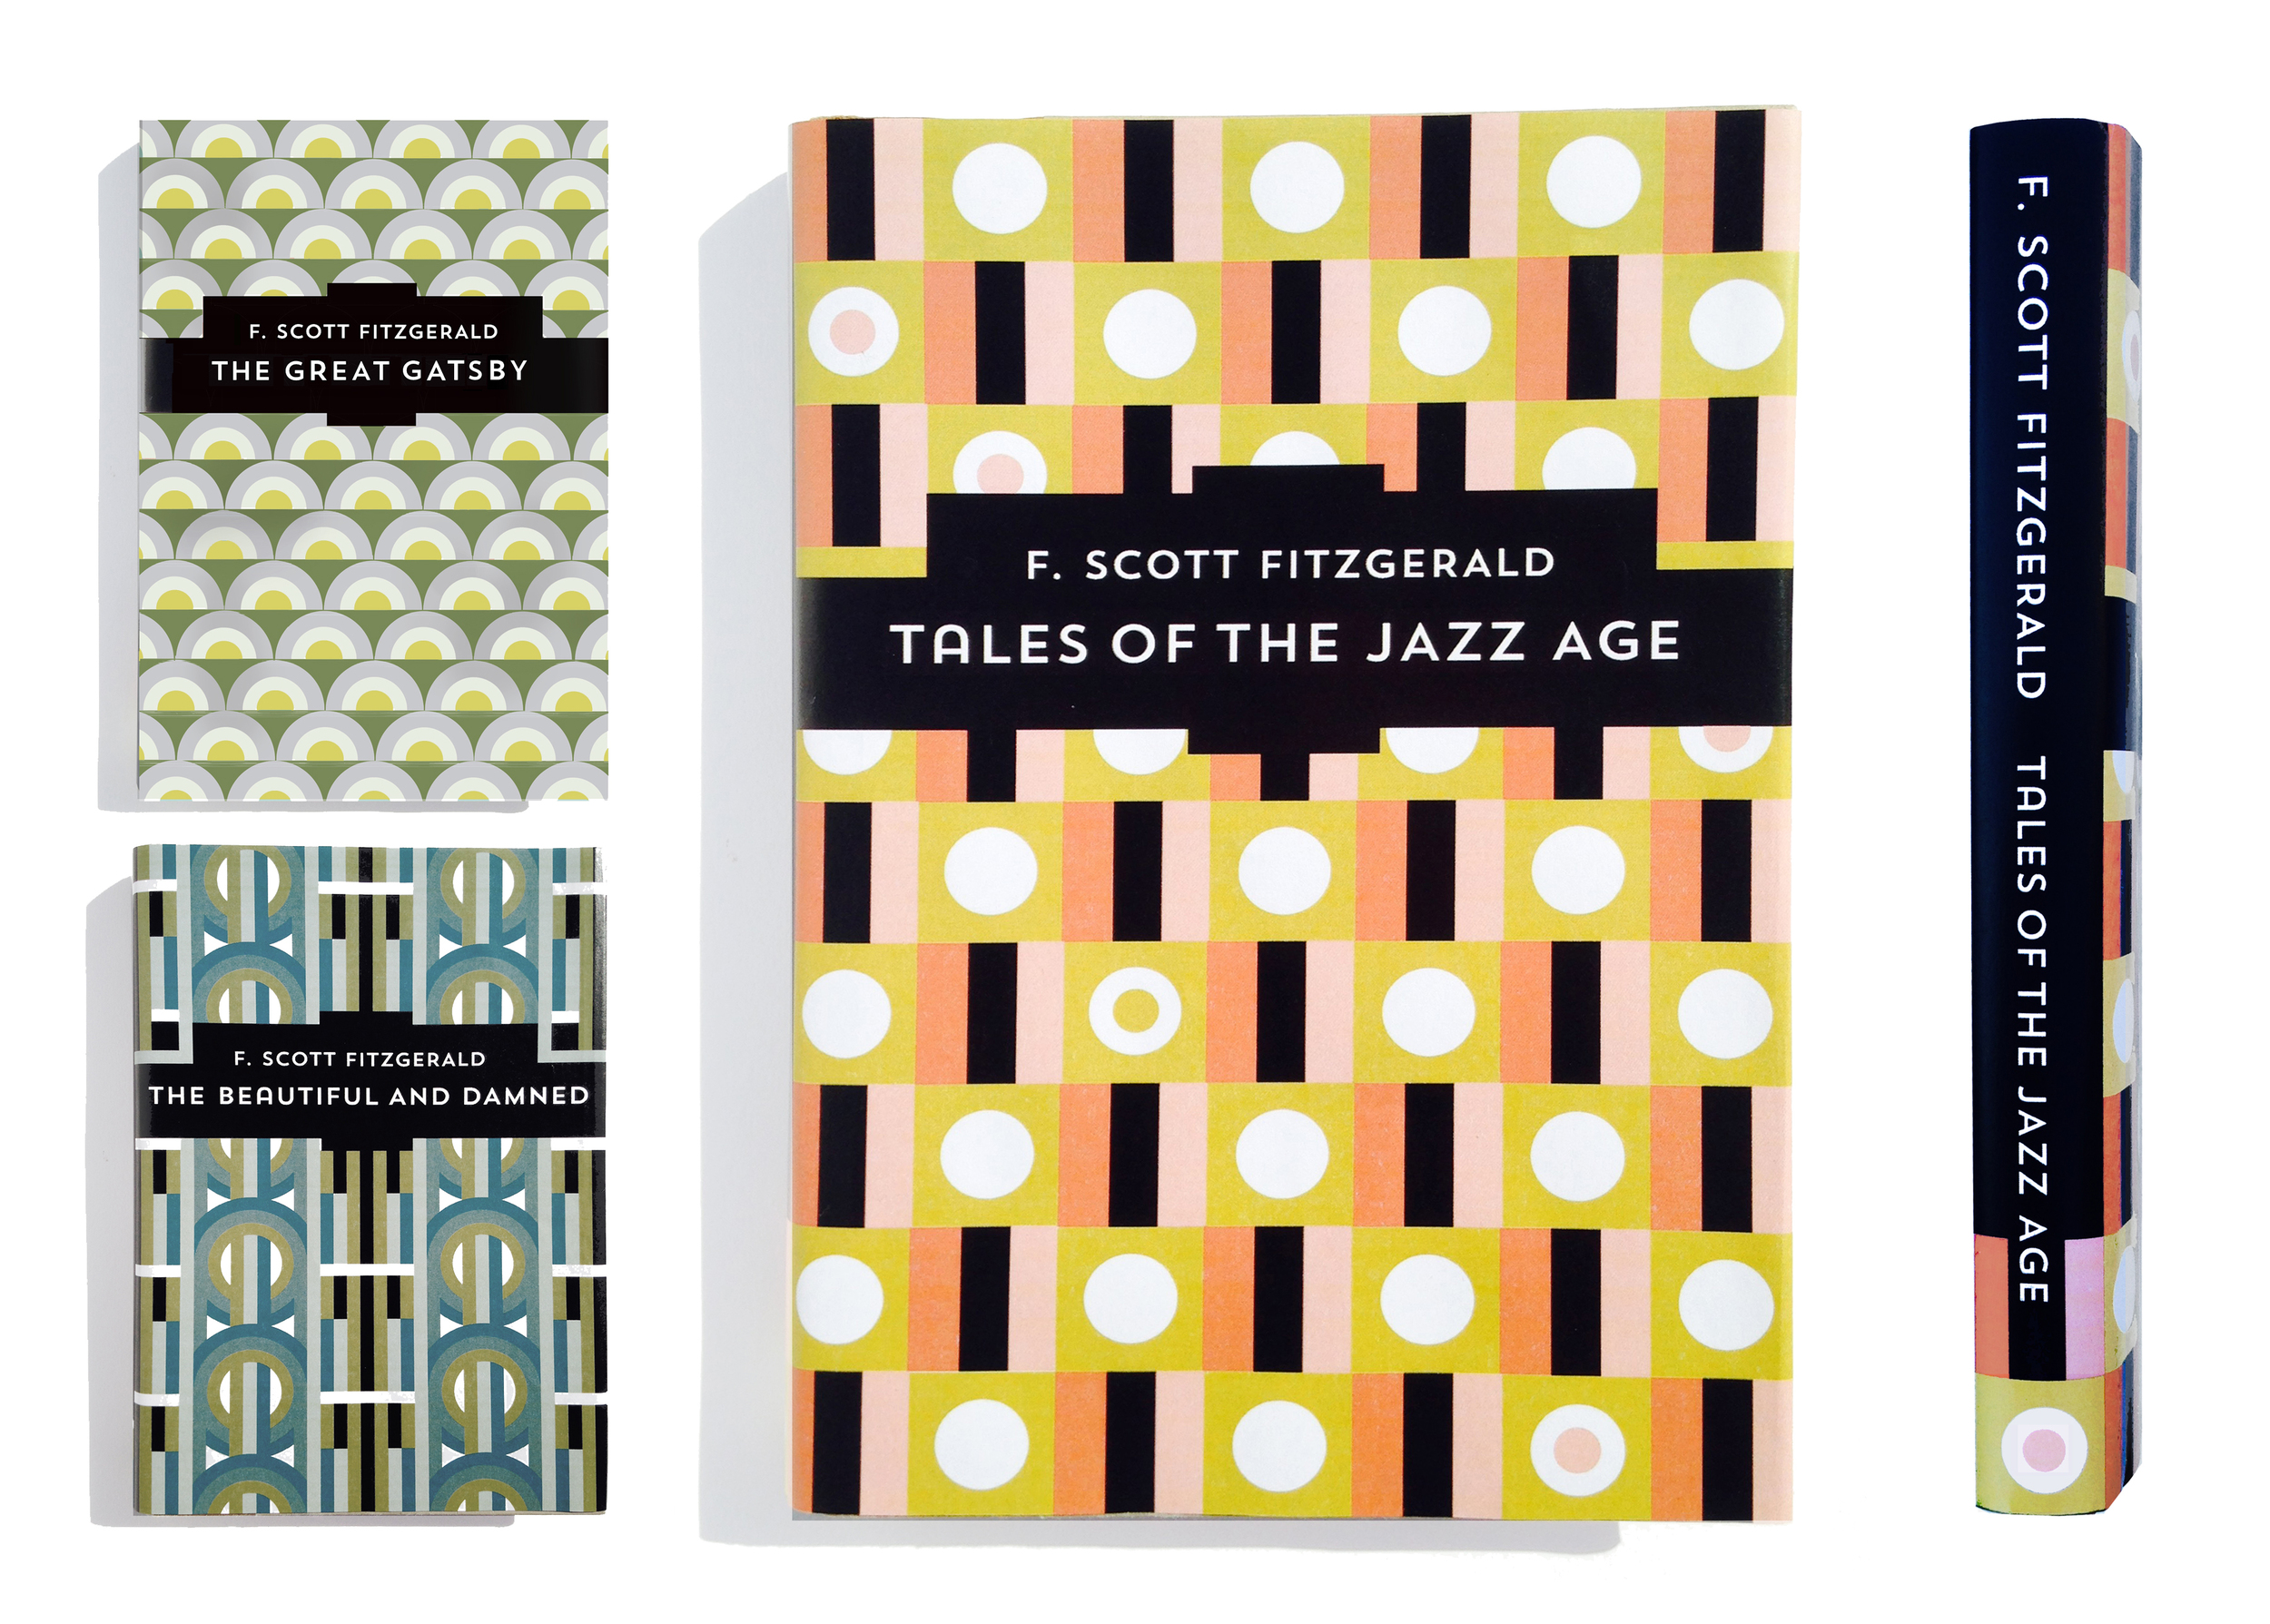 F. Scott Fitzgerald book jacket designs